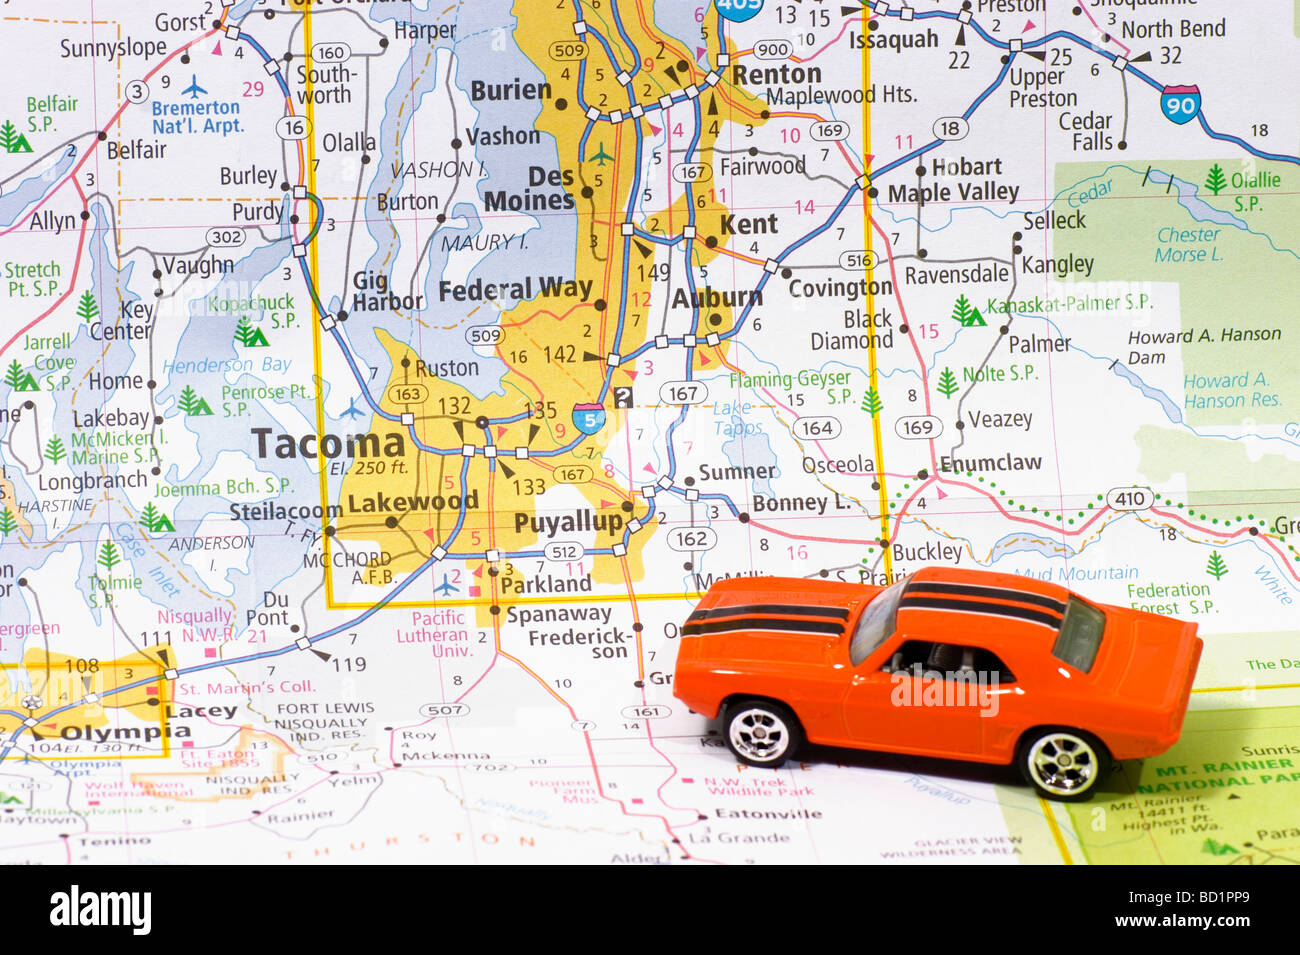 Automobile On Road Map Or Seattle Tacoma Washington USA United - Road map usa